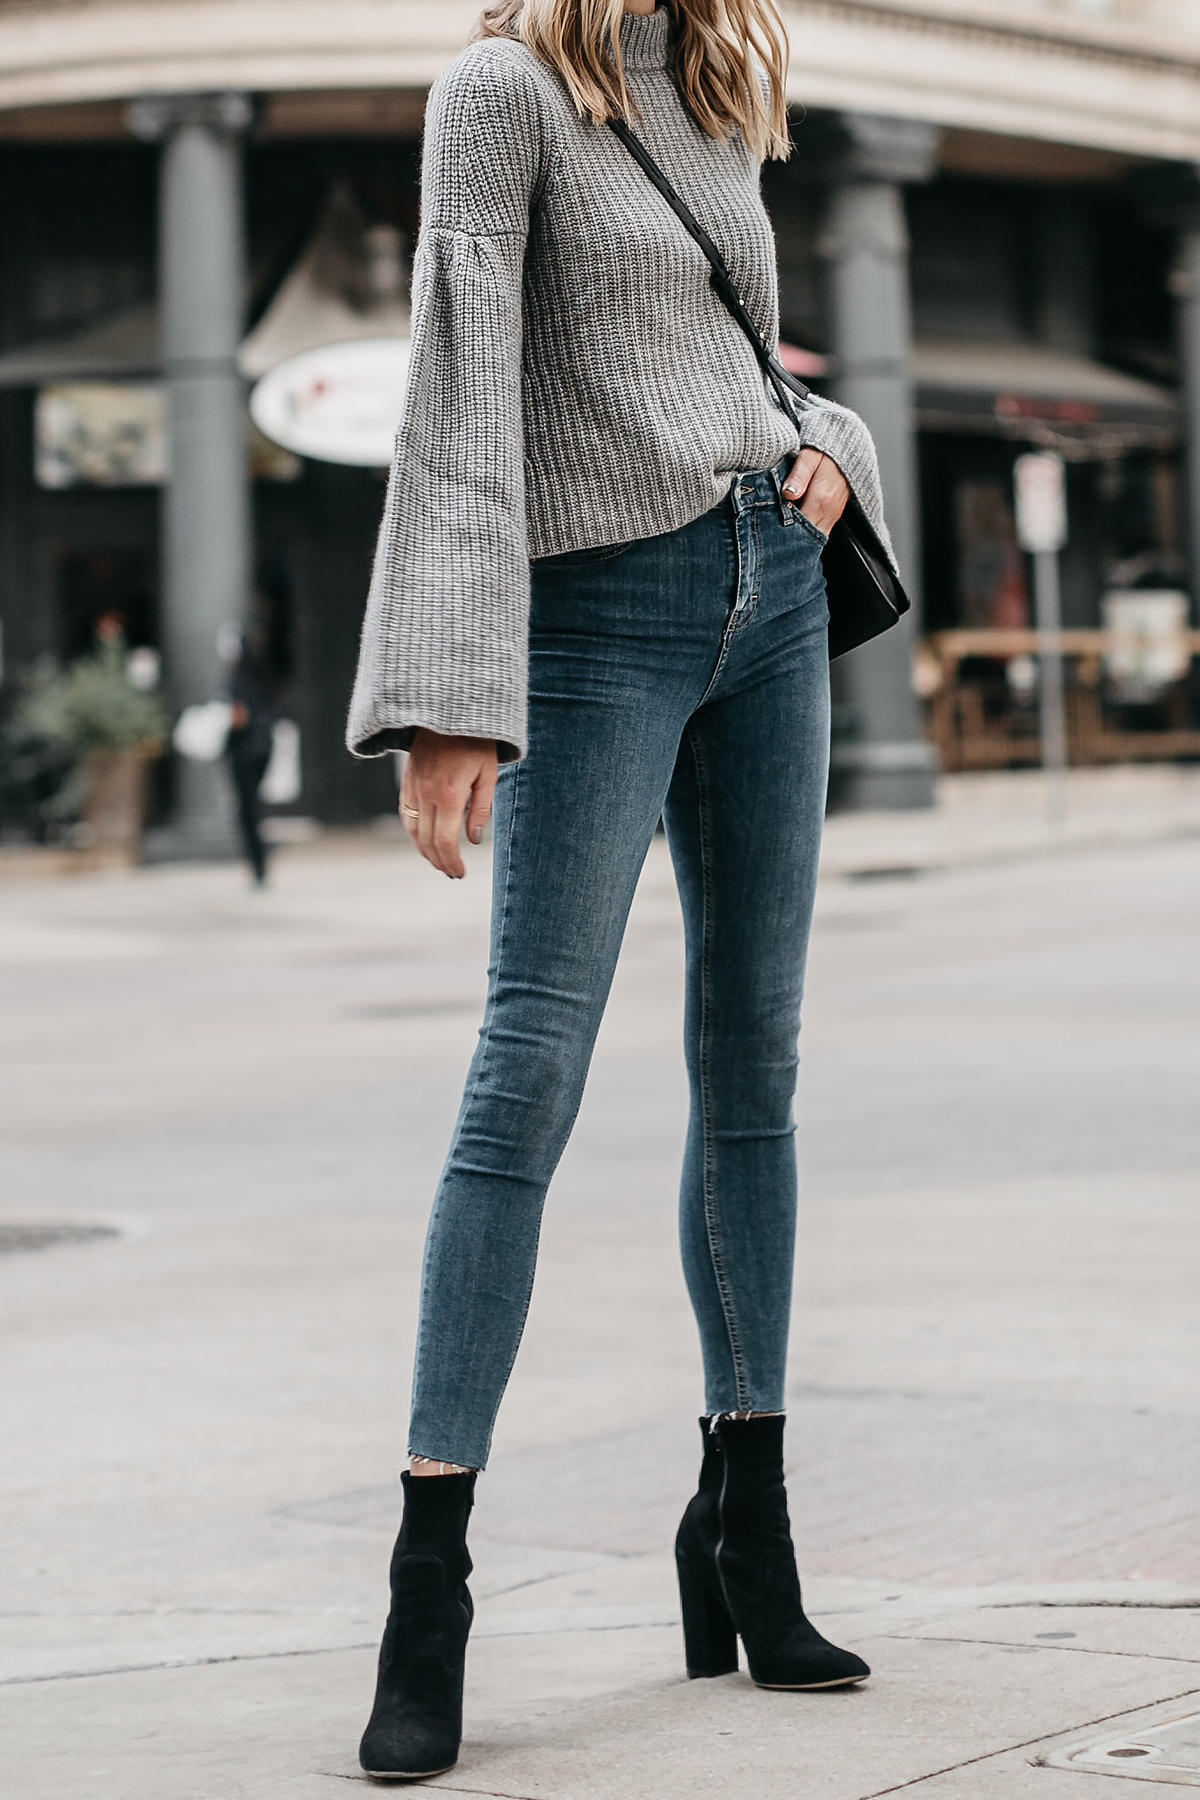 Grey Bell Sleeve Sweater Denim Skinny Jeans Black Booties Fashion Jackson Dallas Blogger Fashion Blogger Street Style